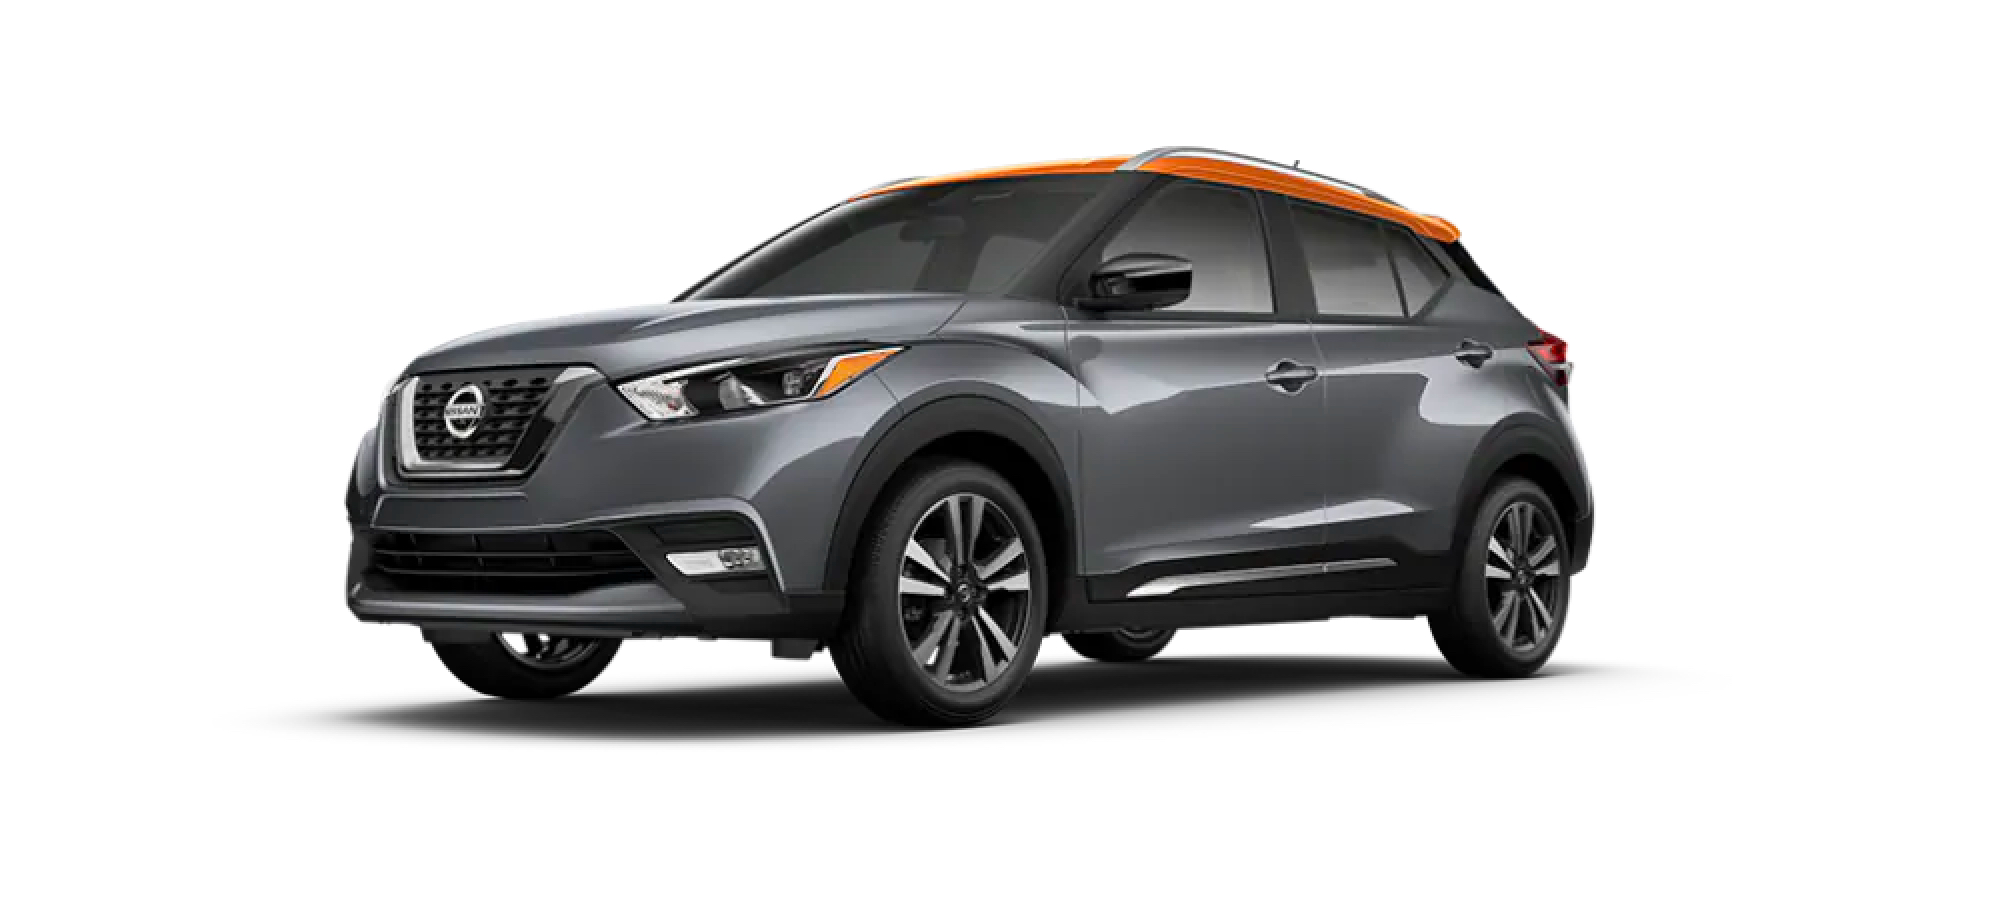 Gun Metallic/Monarch Orange Metallic Nissan Kicks